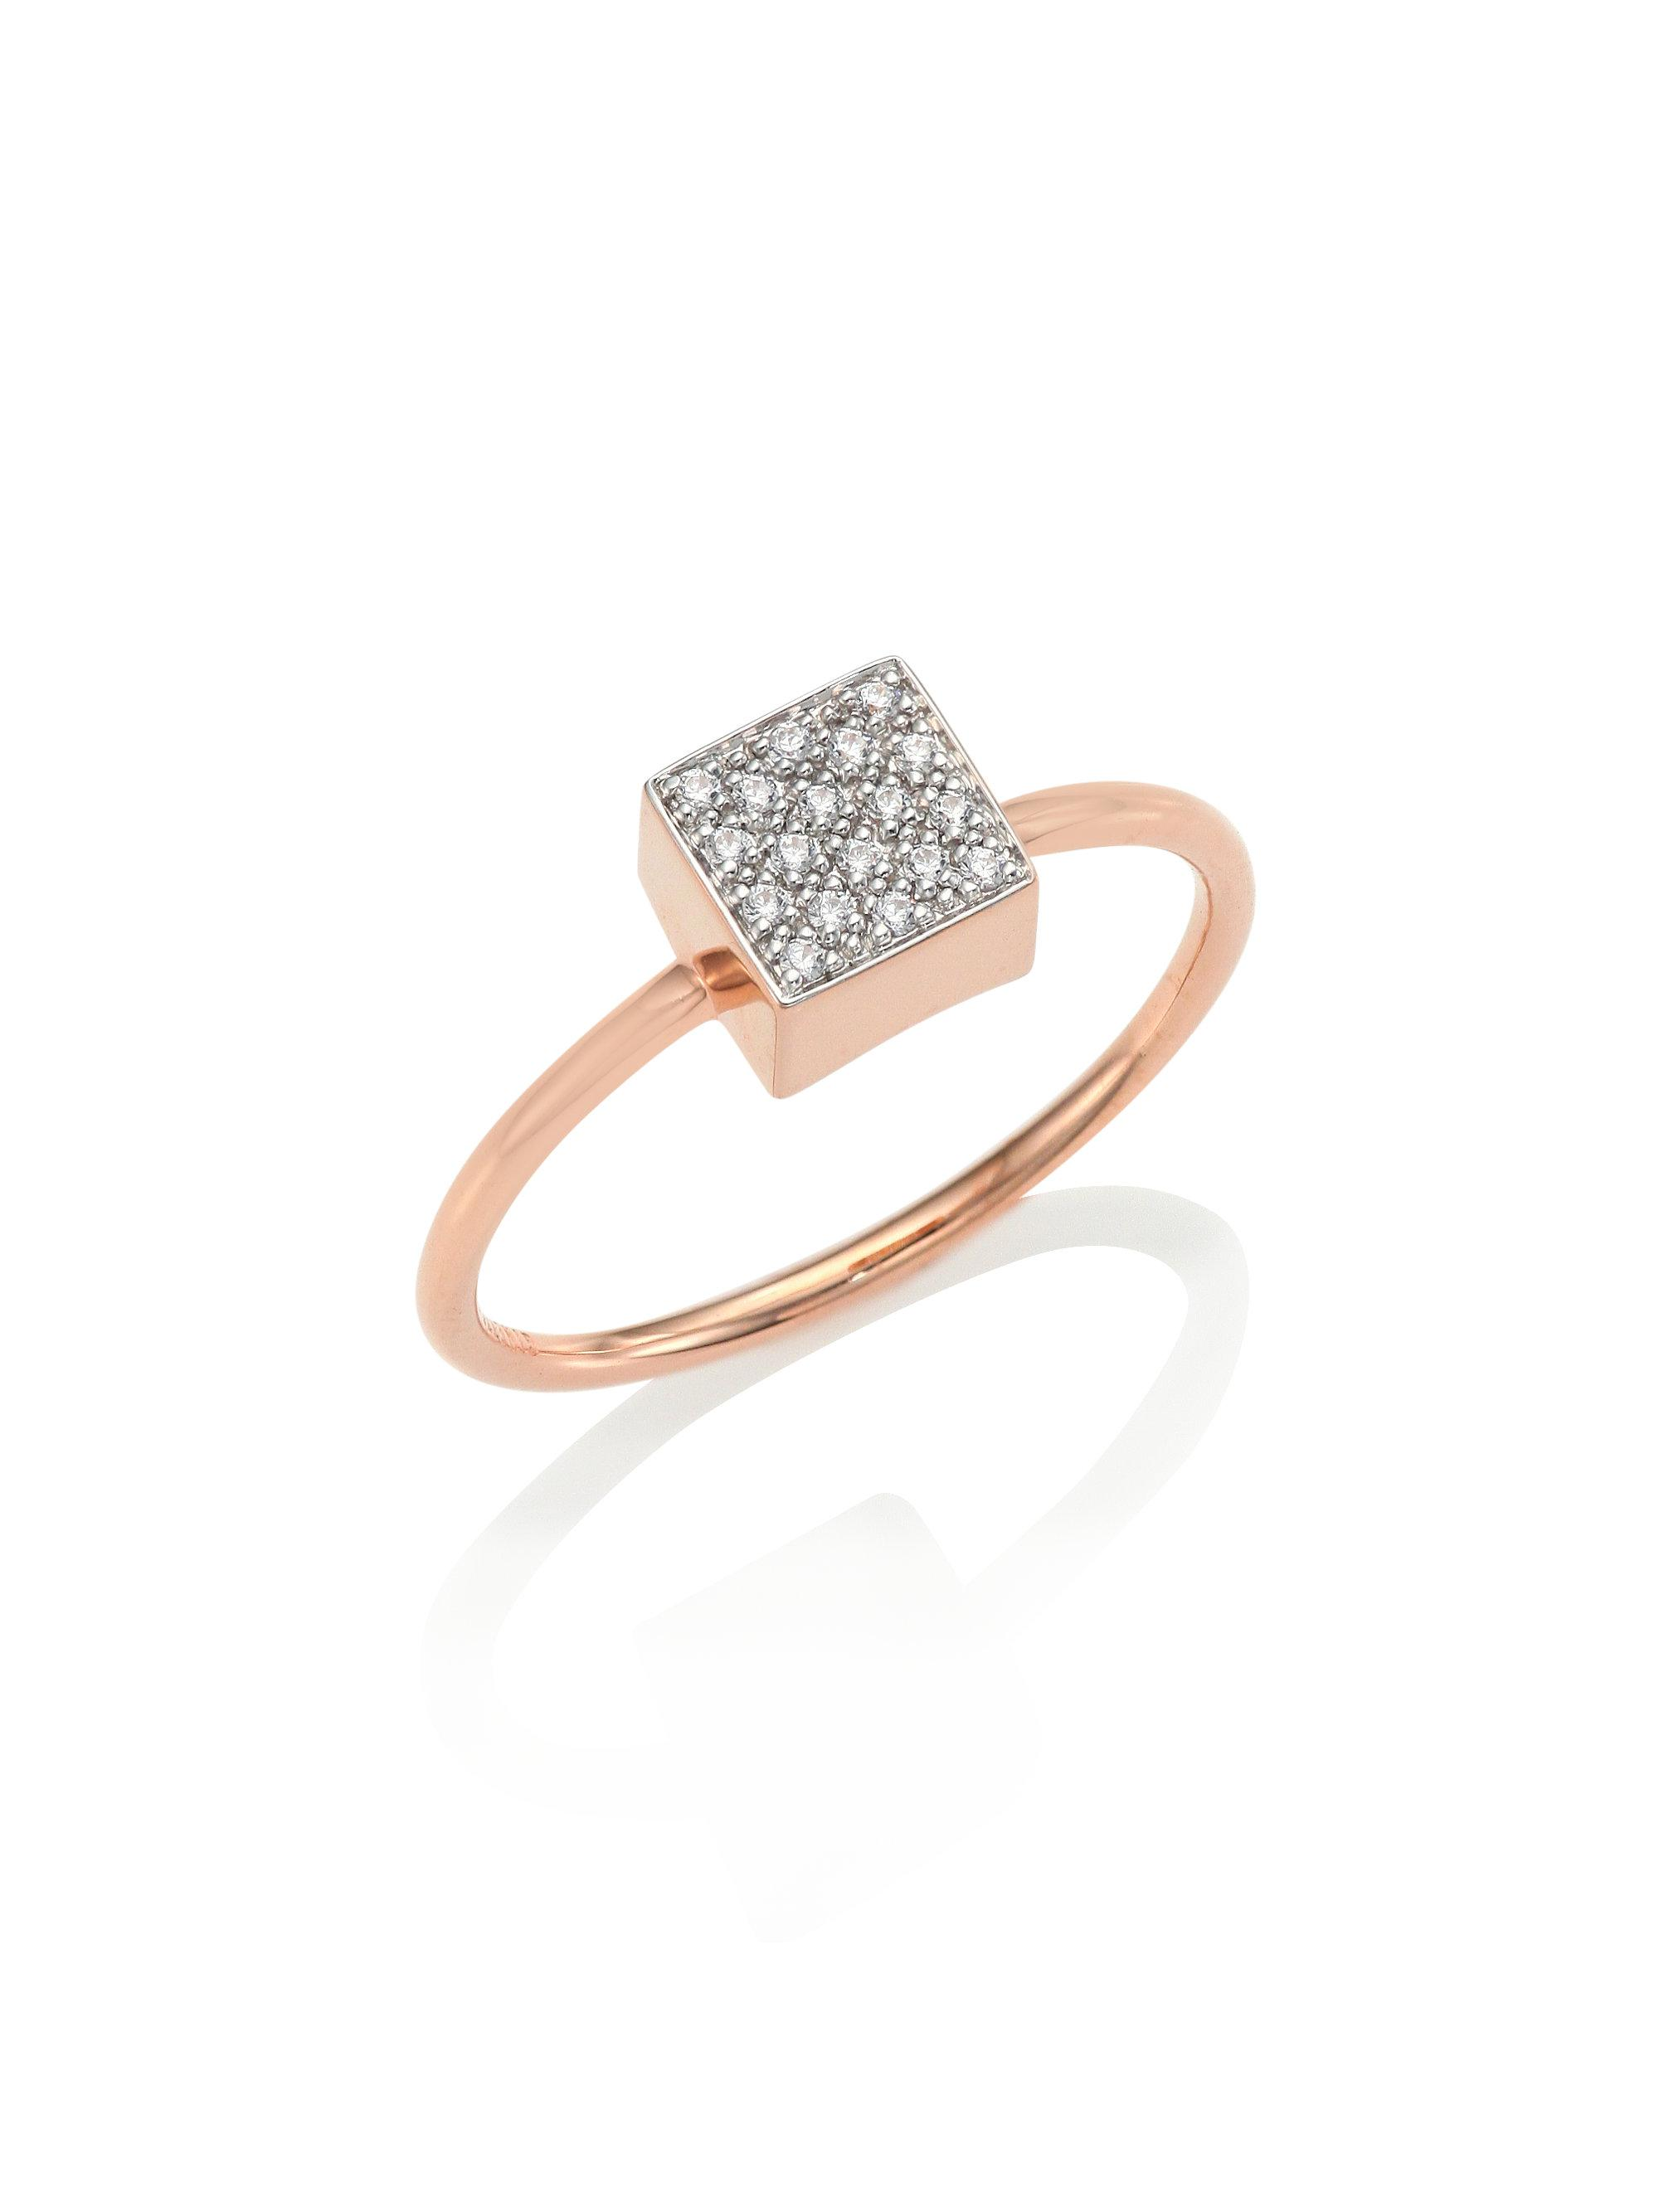 Ginette NY Ever Turquoise Square 18-karat rose gold ring Glel5y7mq